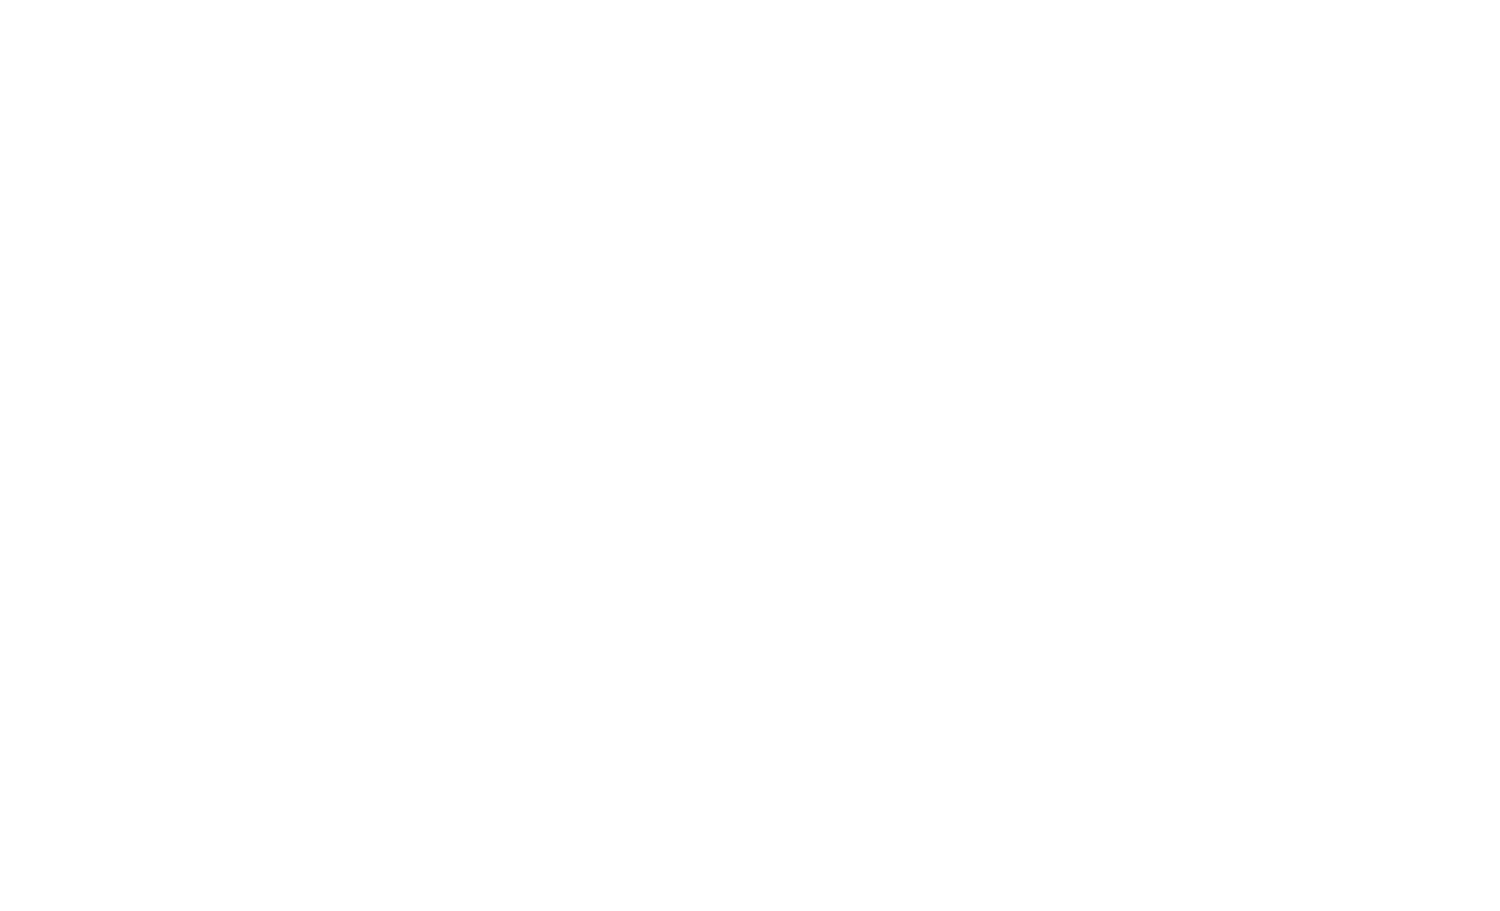 THE BLUE BOY CO,. LTD.